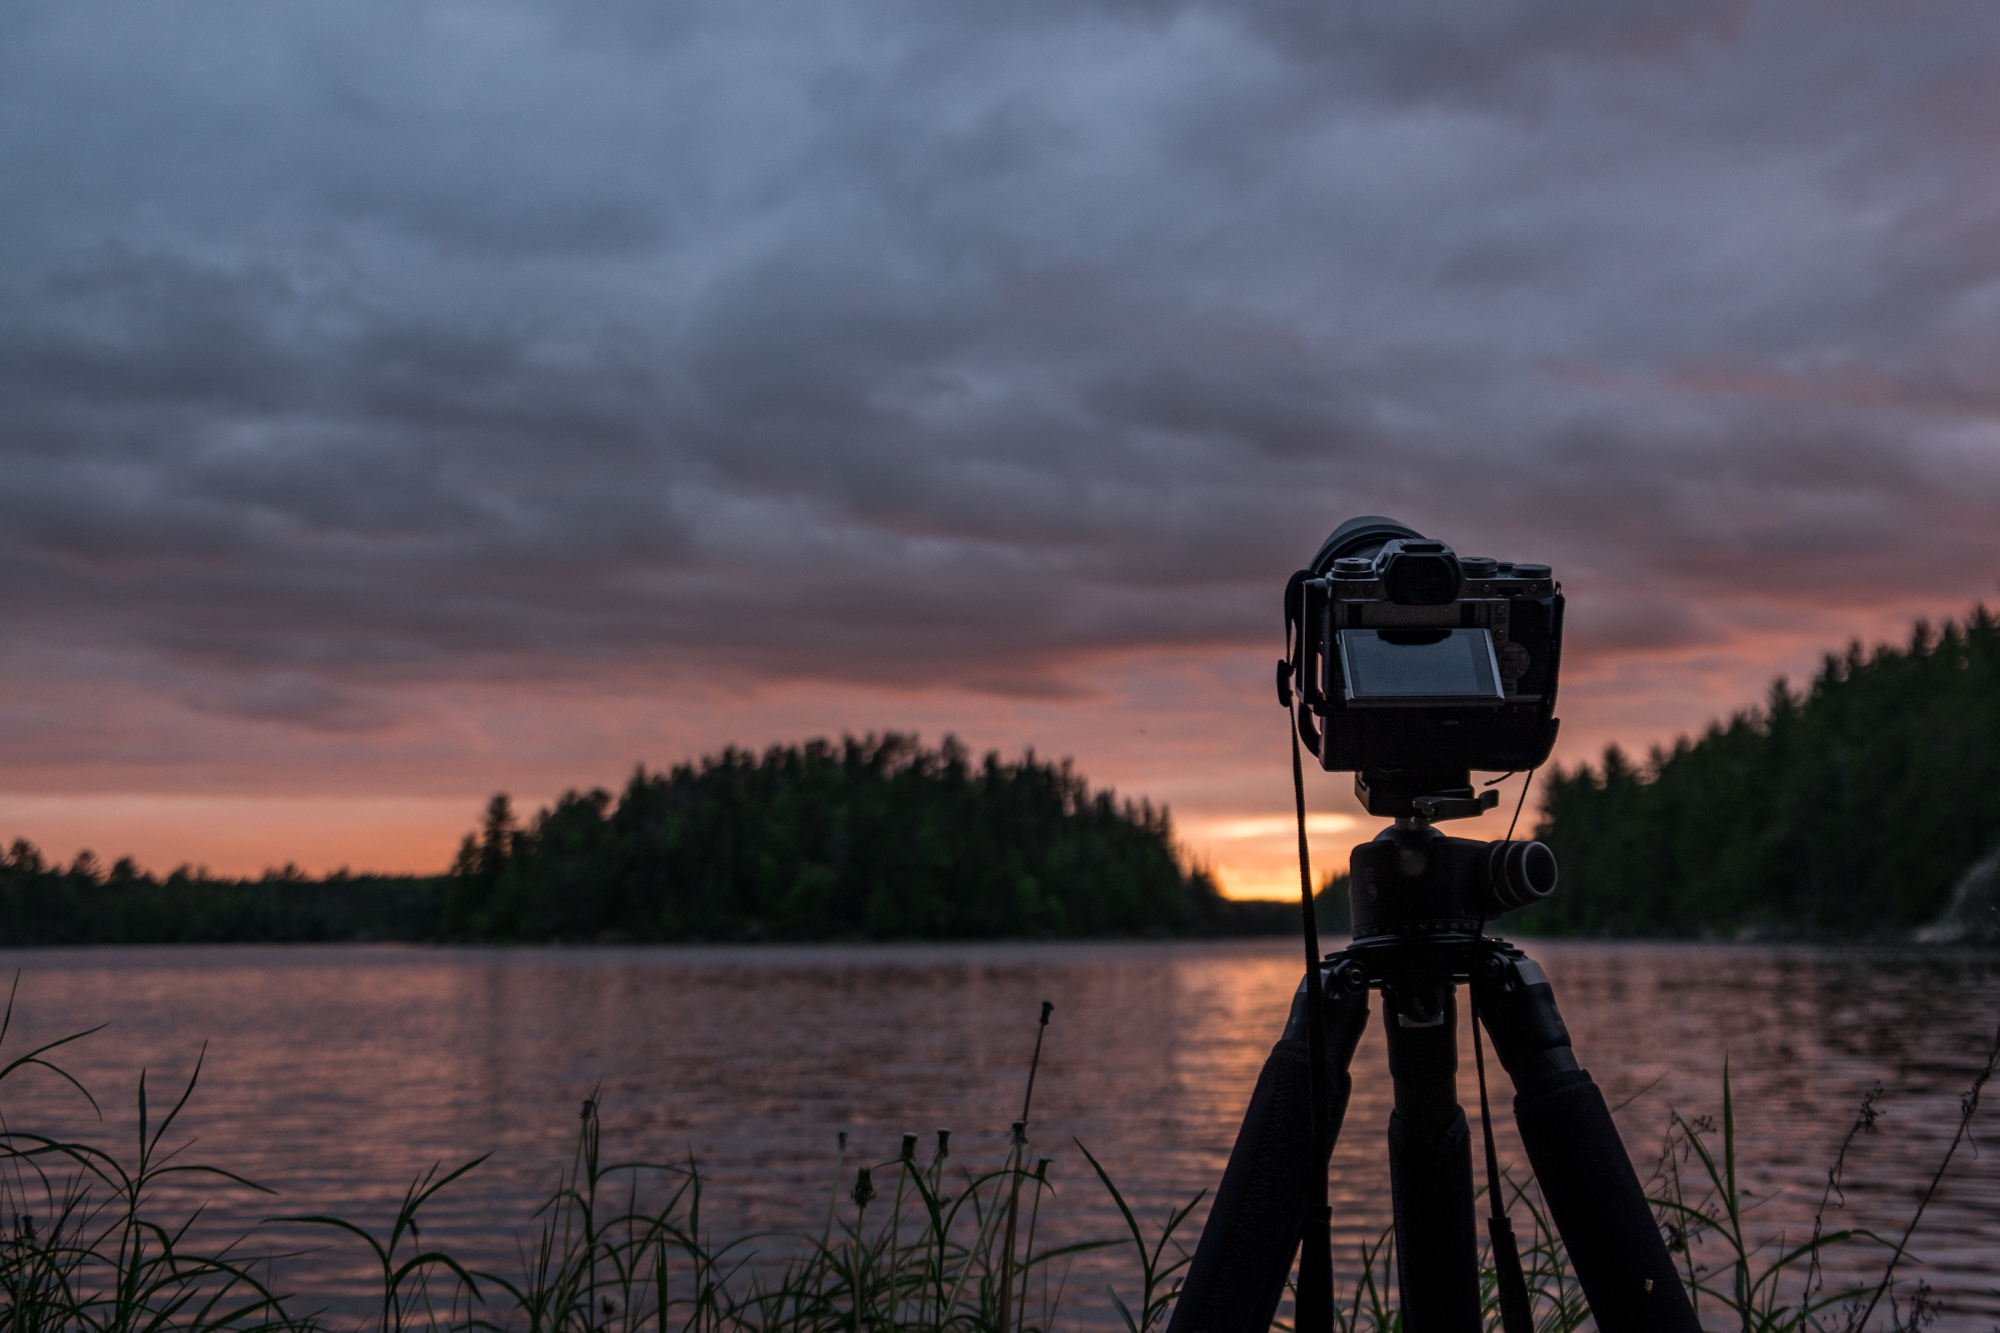 A beautiful sunset in Voyageurs National Park in Minnesota.